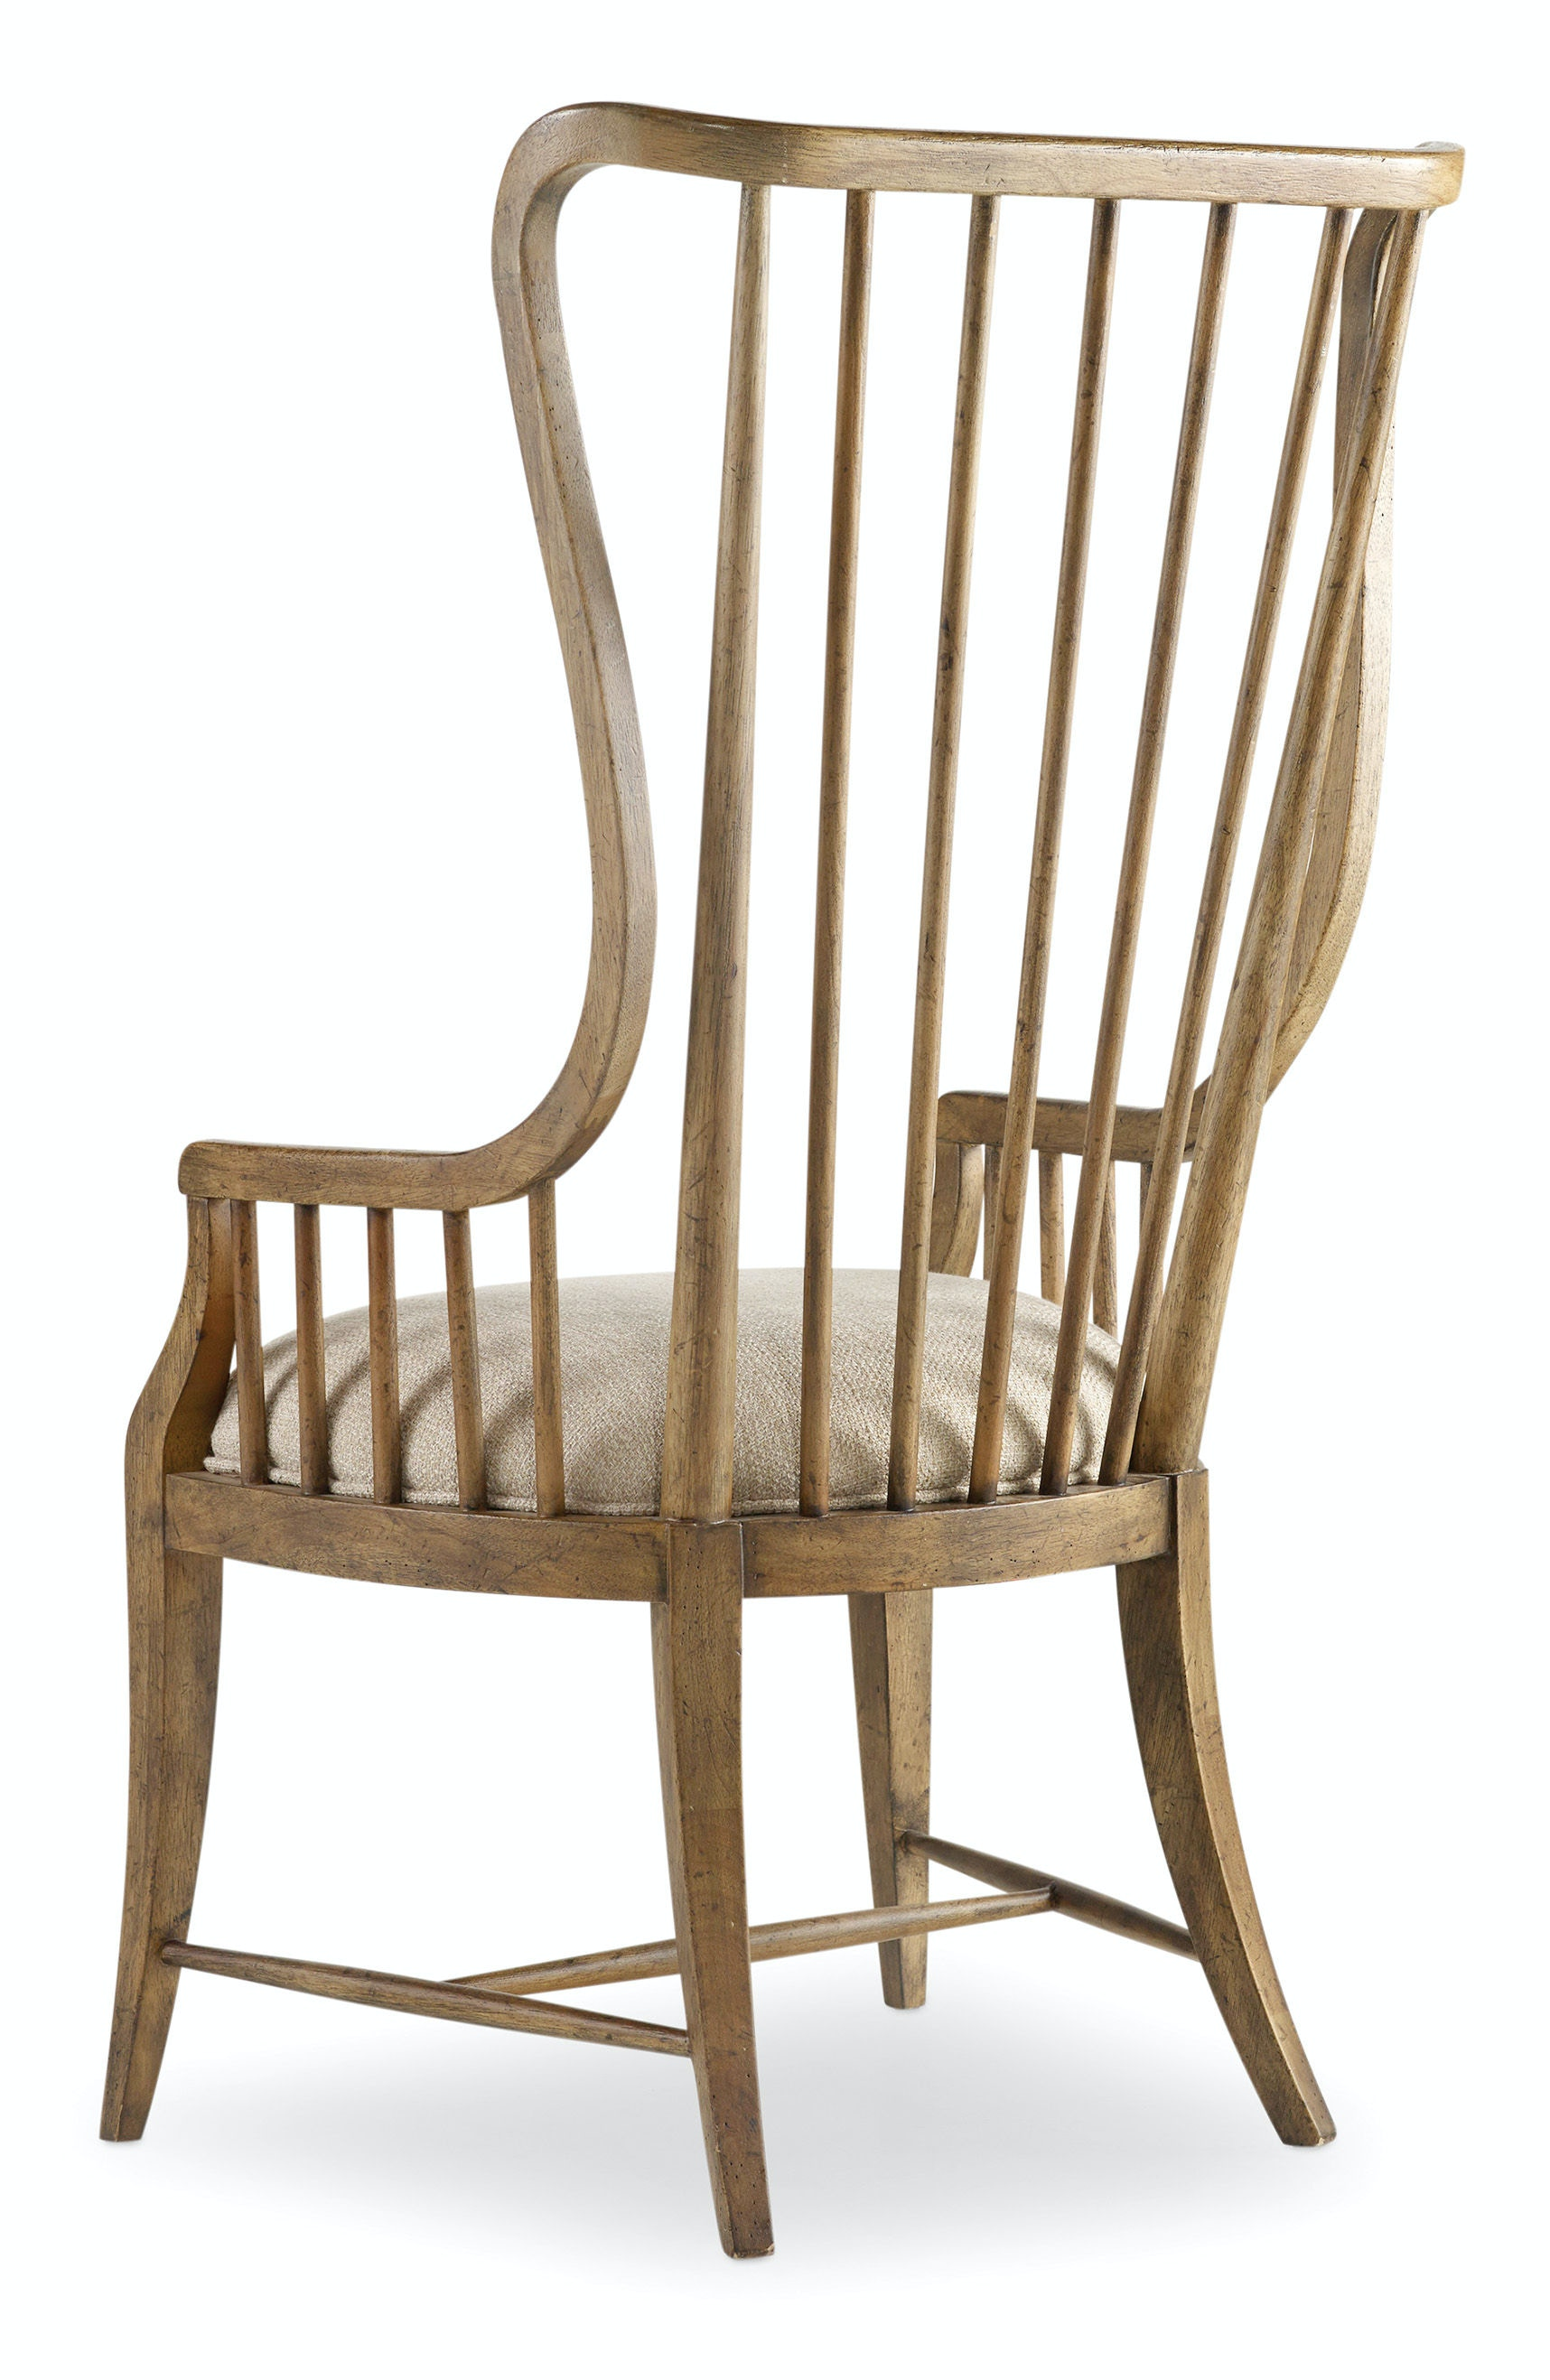 Hooker Furniture Sanctuary Tall Spindle Arm Chair 5401 75400